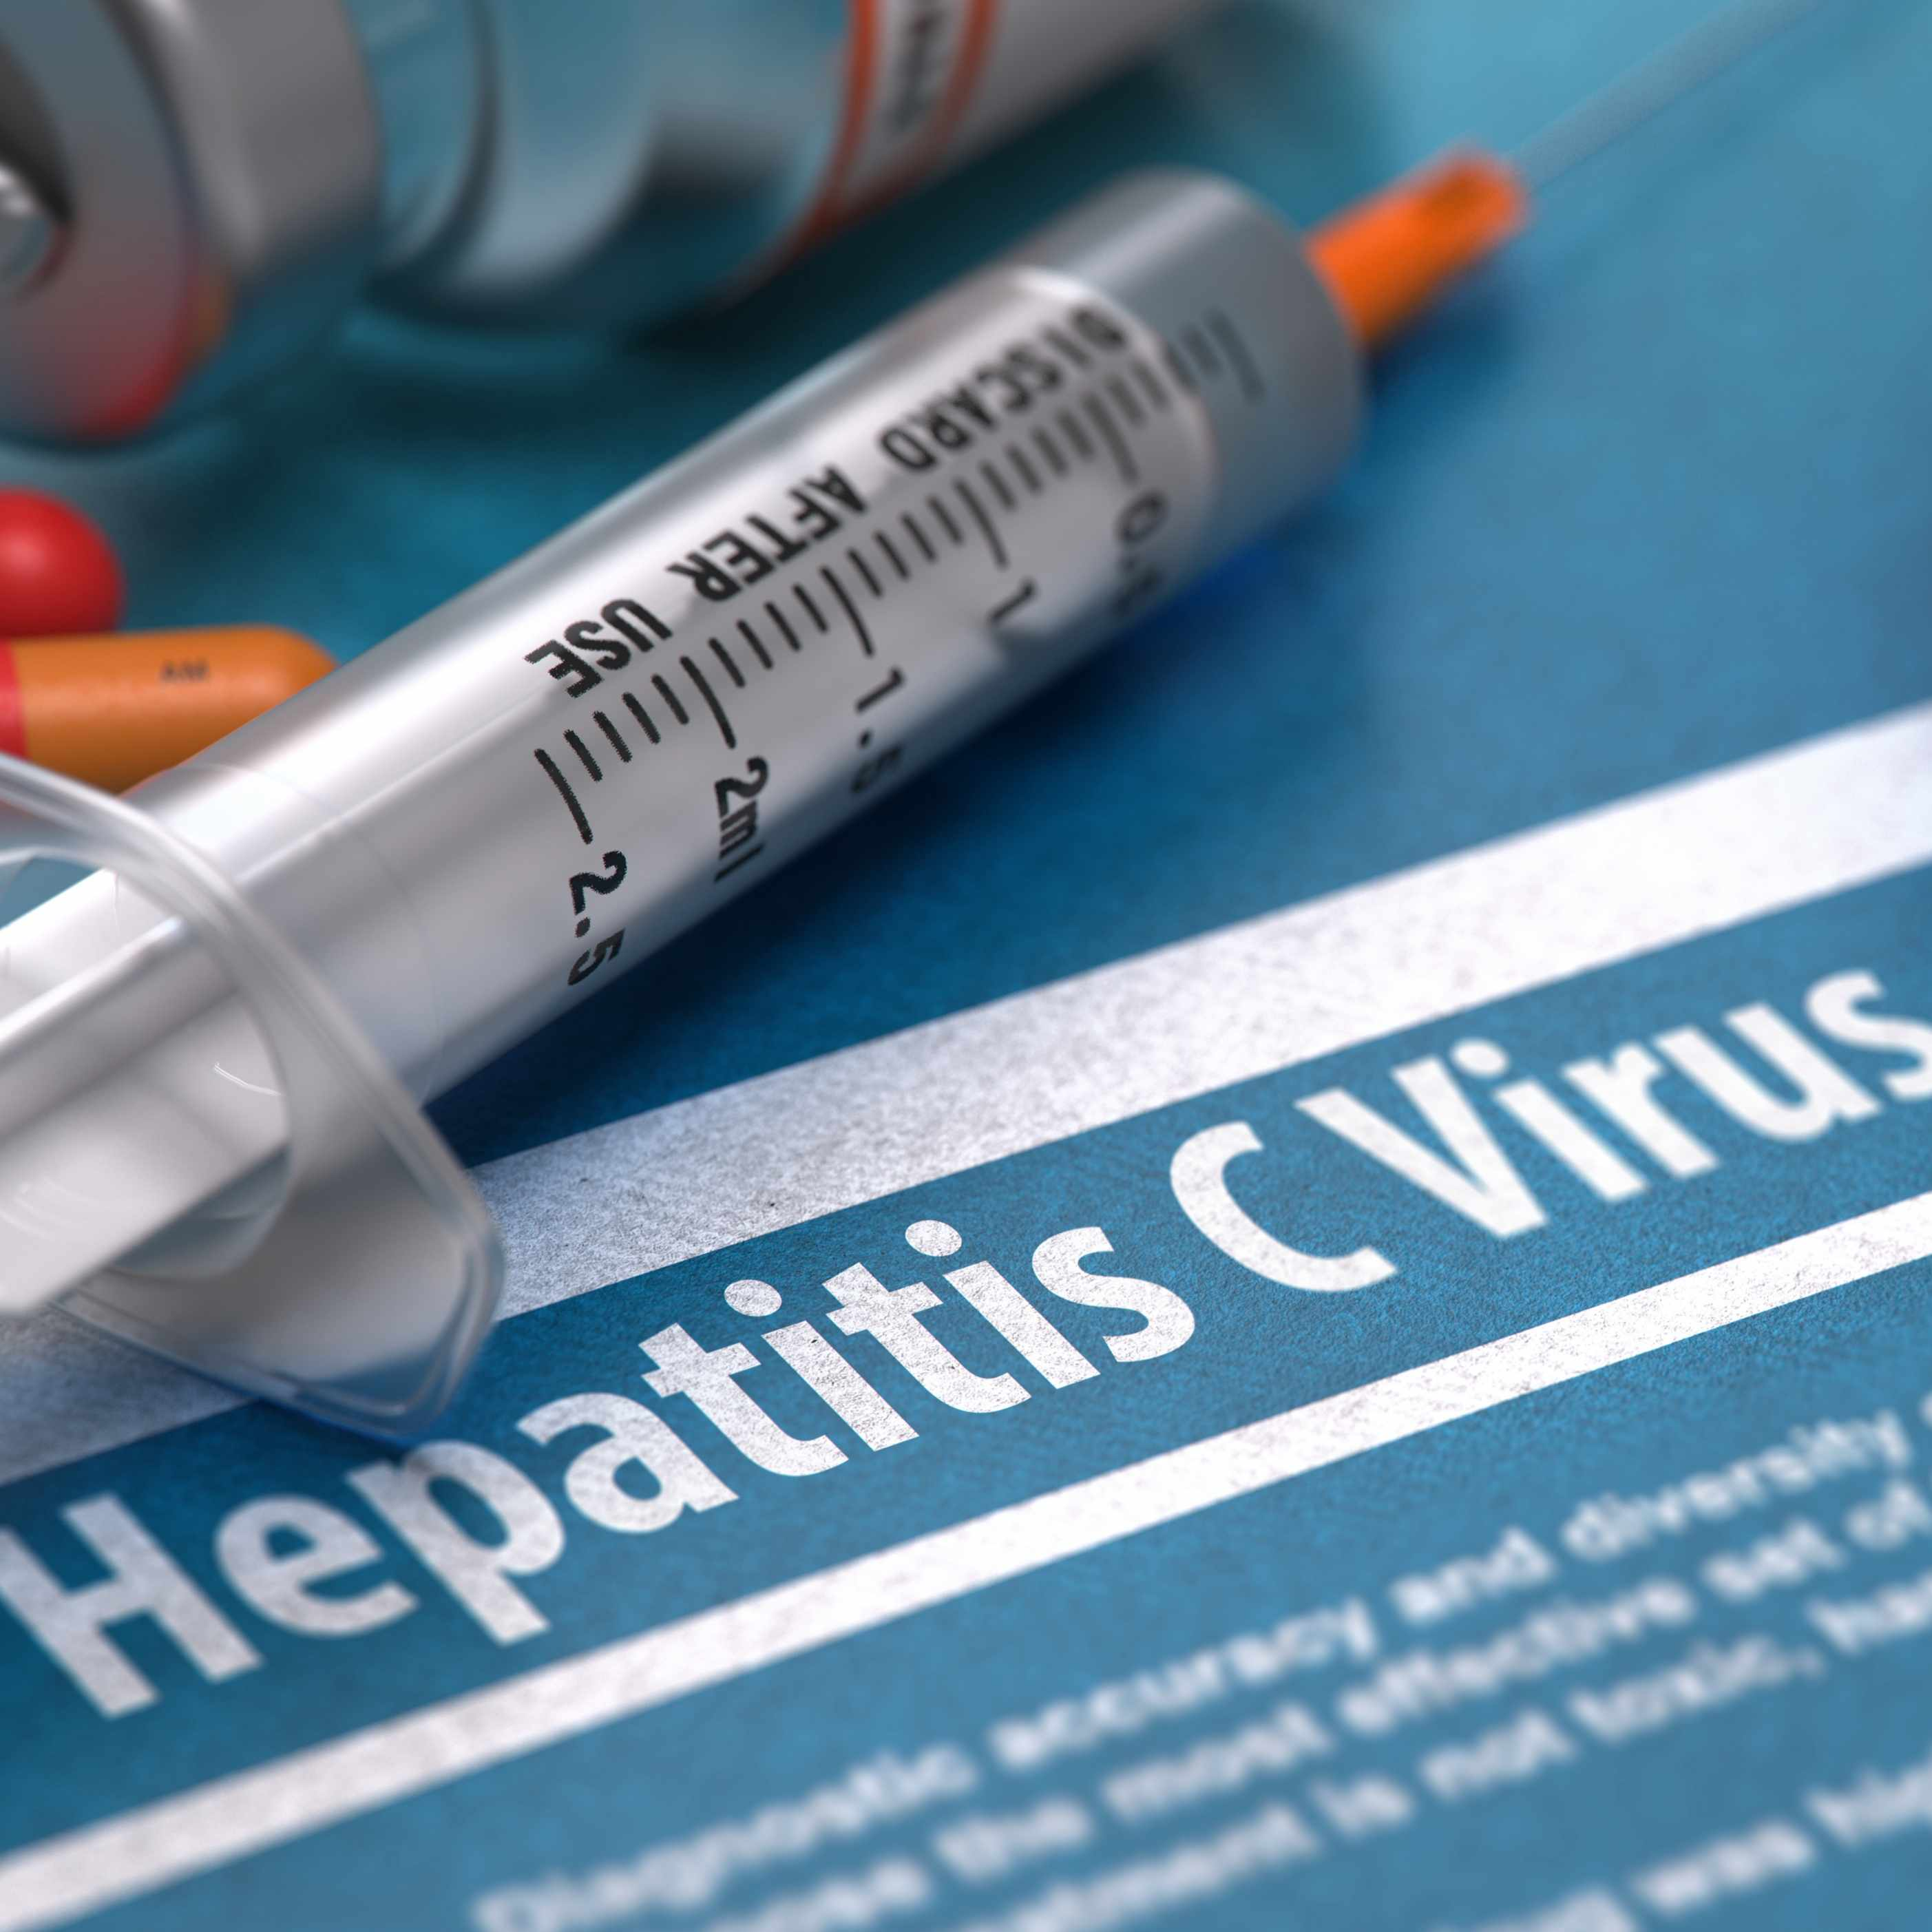 hepatitis C virus written on blue background with pills, syringe and stethoscope